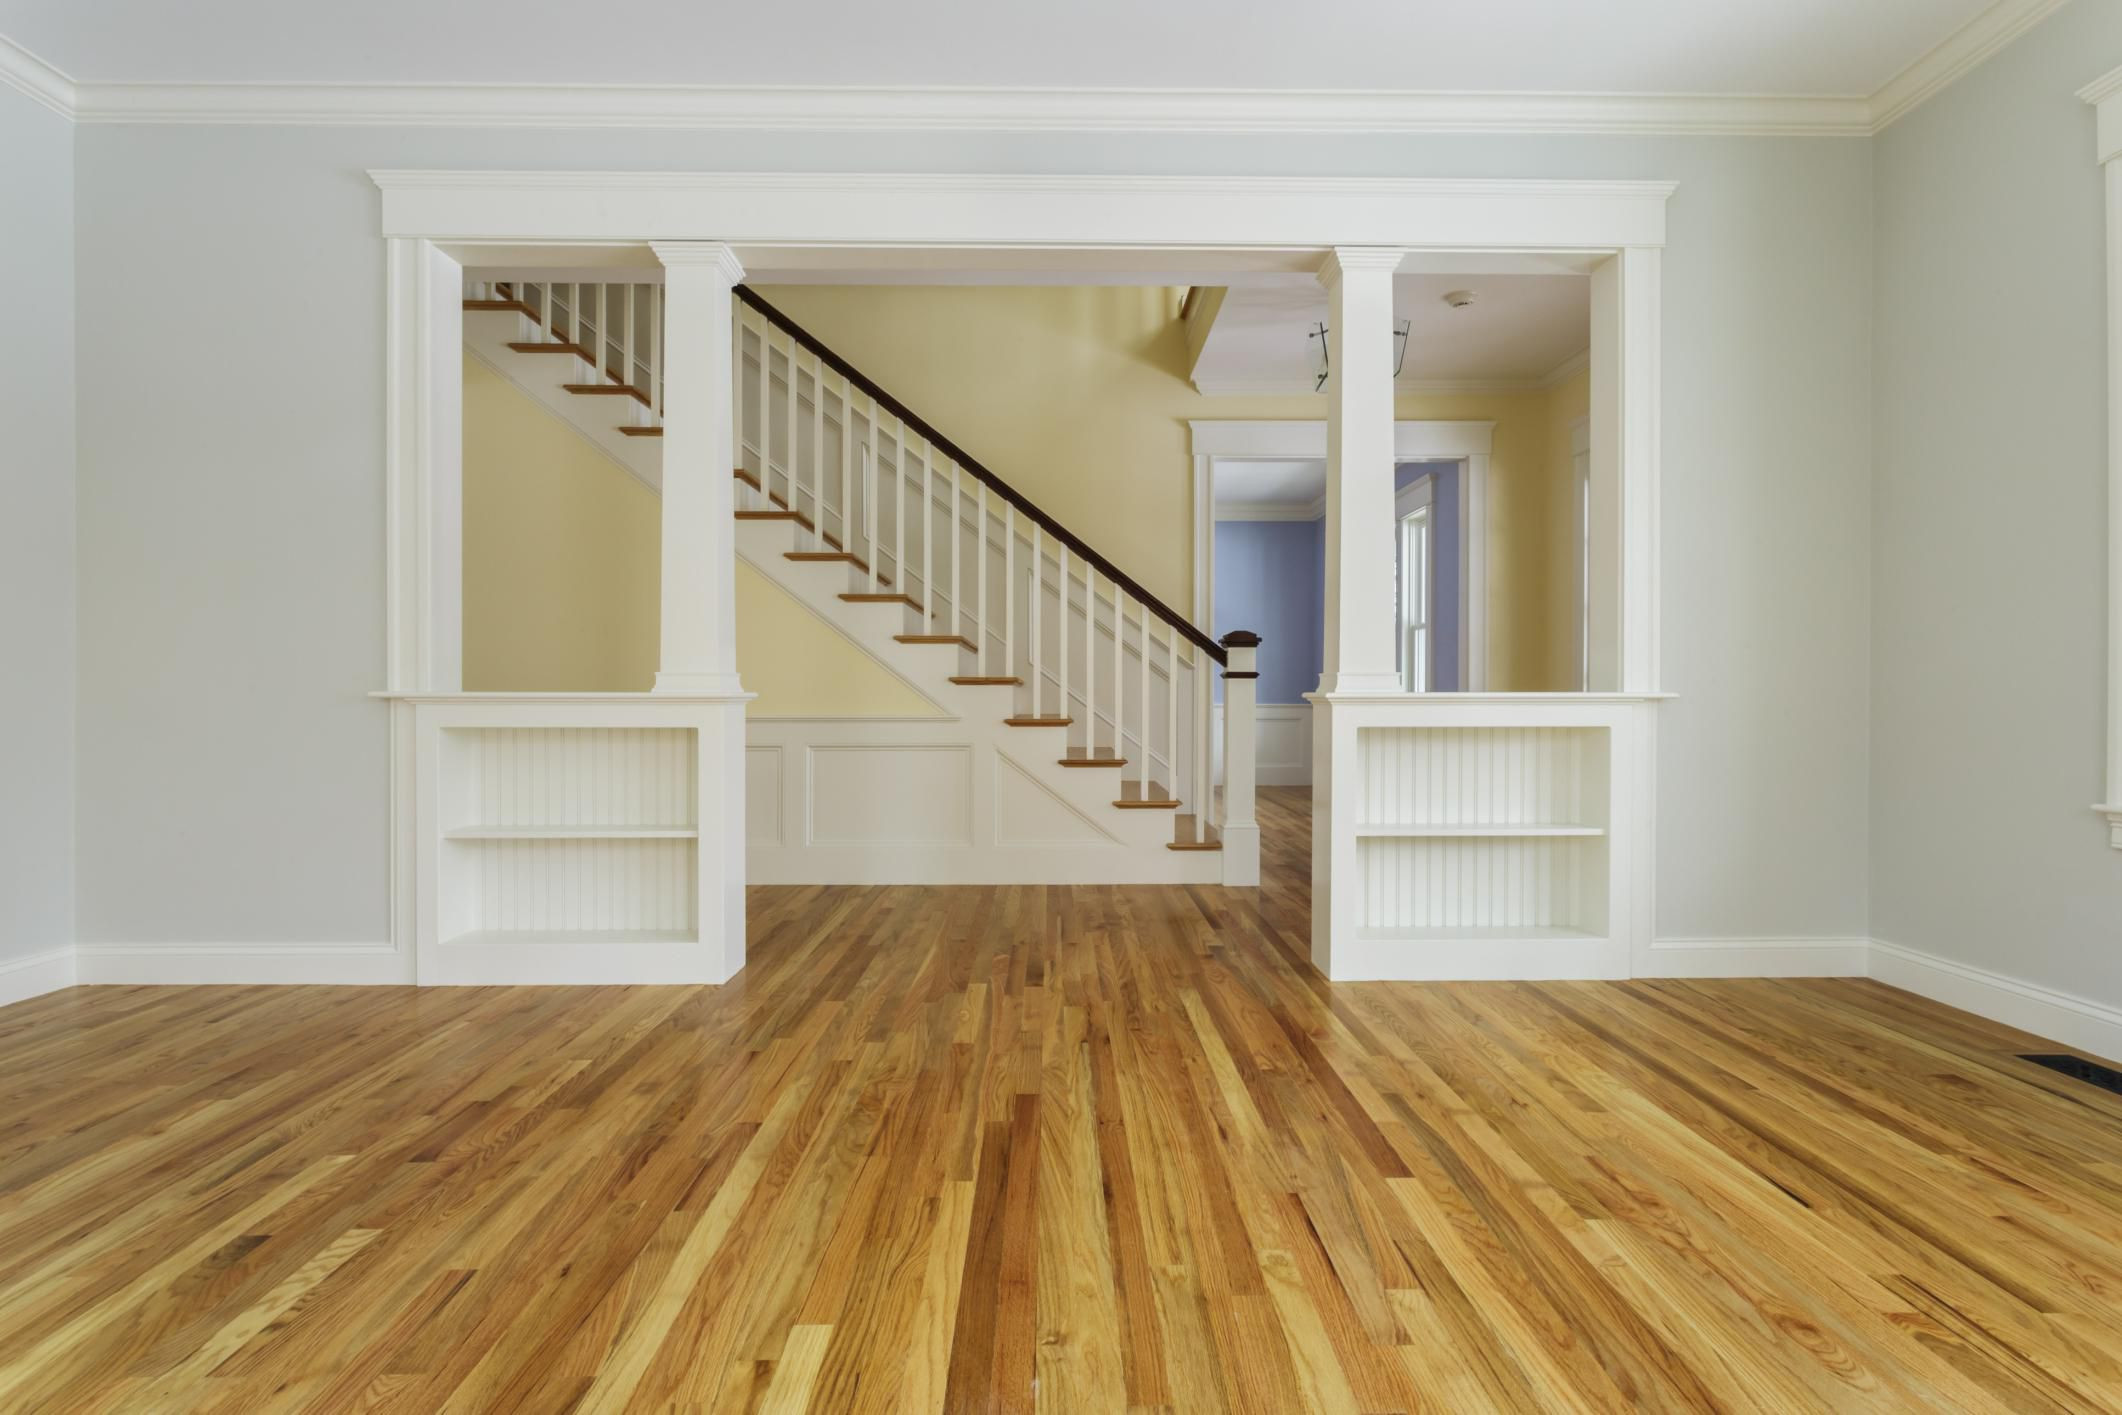 how to lay a hardwood floor tongue and groove of guide to solid hardwood floors intended for 168686571 56a49f213df78cf772834e24